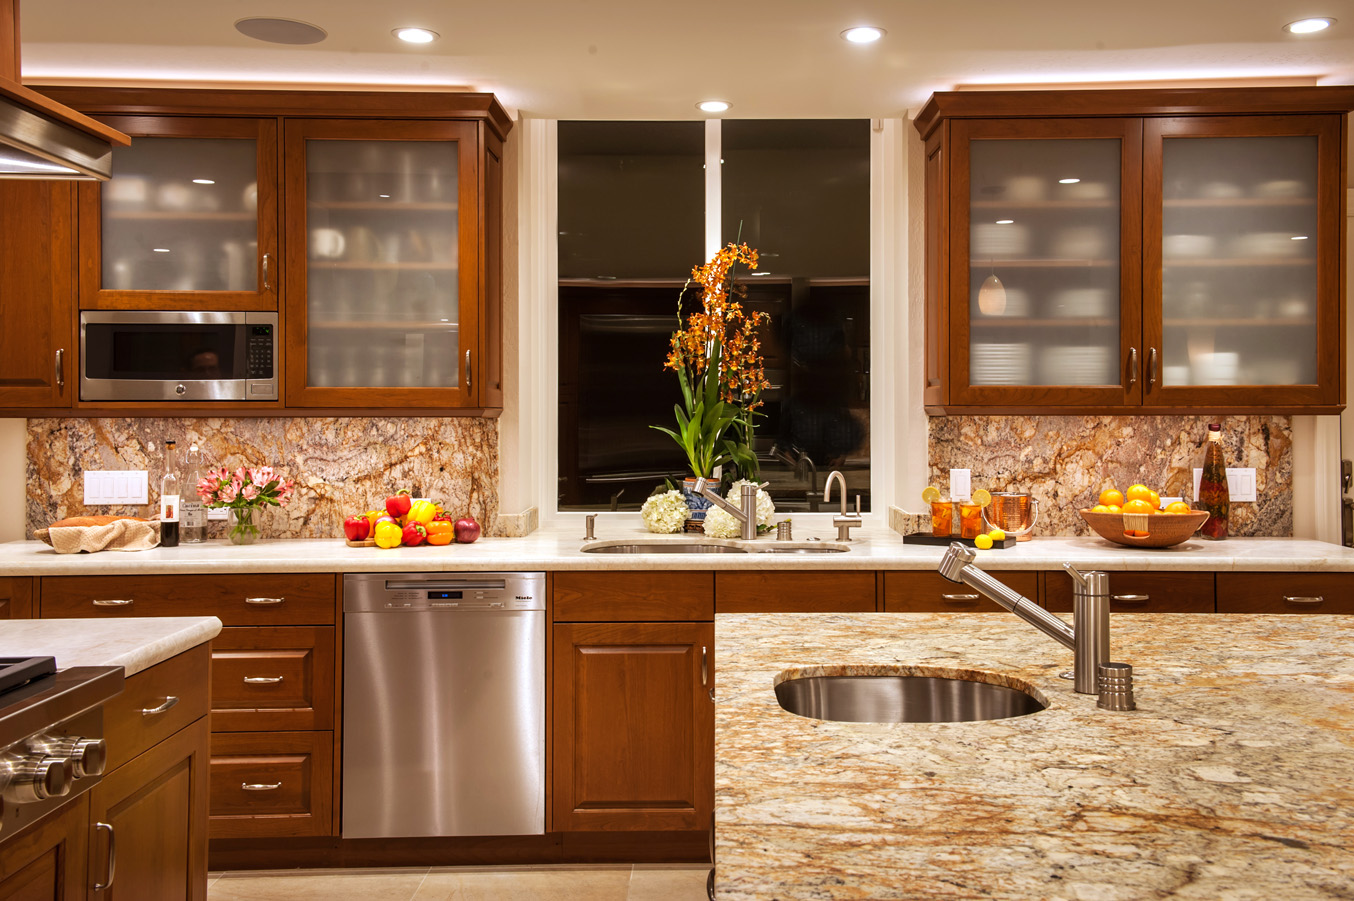 Contrasting granites are used on the counters and backsplashes.